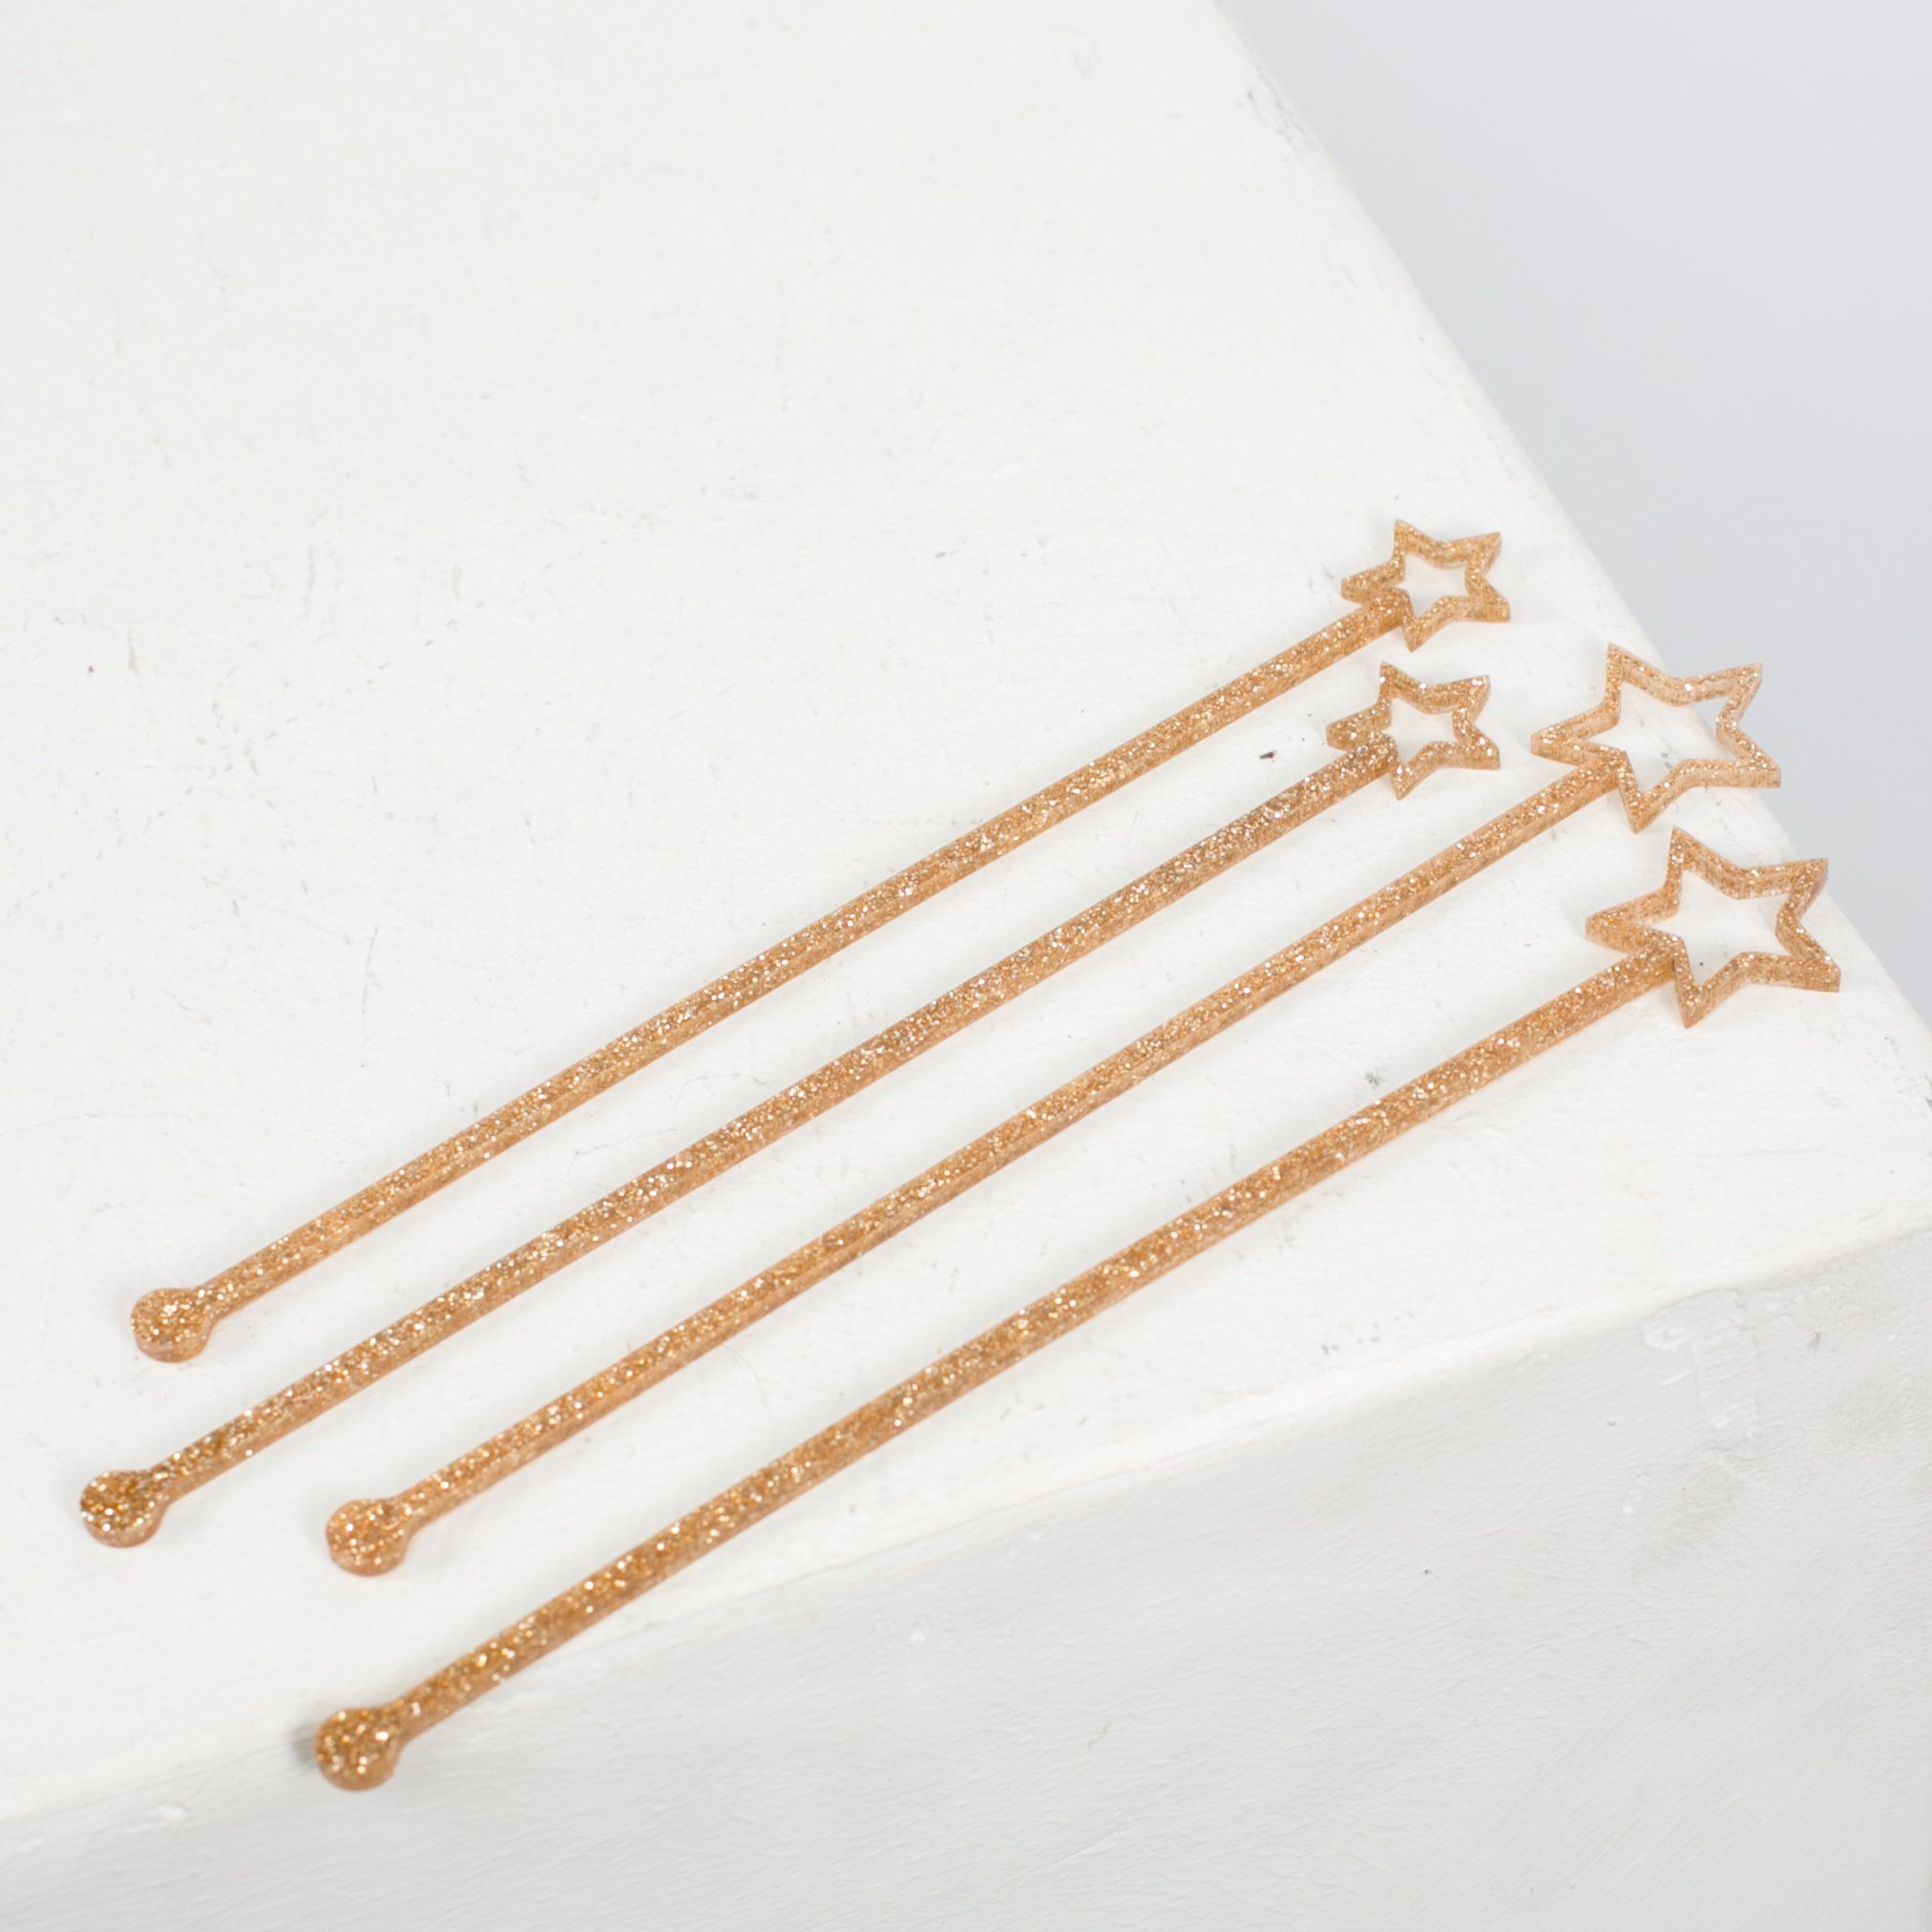 Gold Glitter Swizzle Sticks by Meri Meri. Every occasion could use a bit of gold. These swizzle sticks can help mix any drink, each is decorated with a gold glittered star. Measures 8